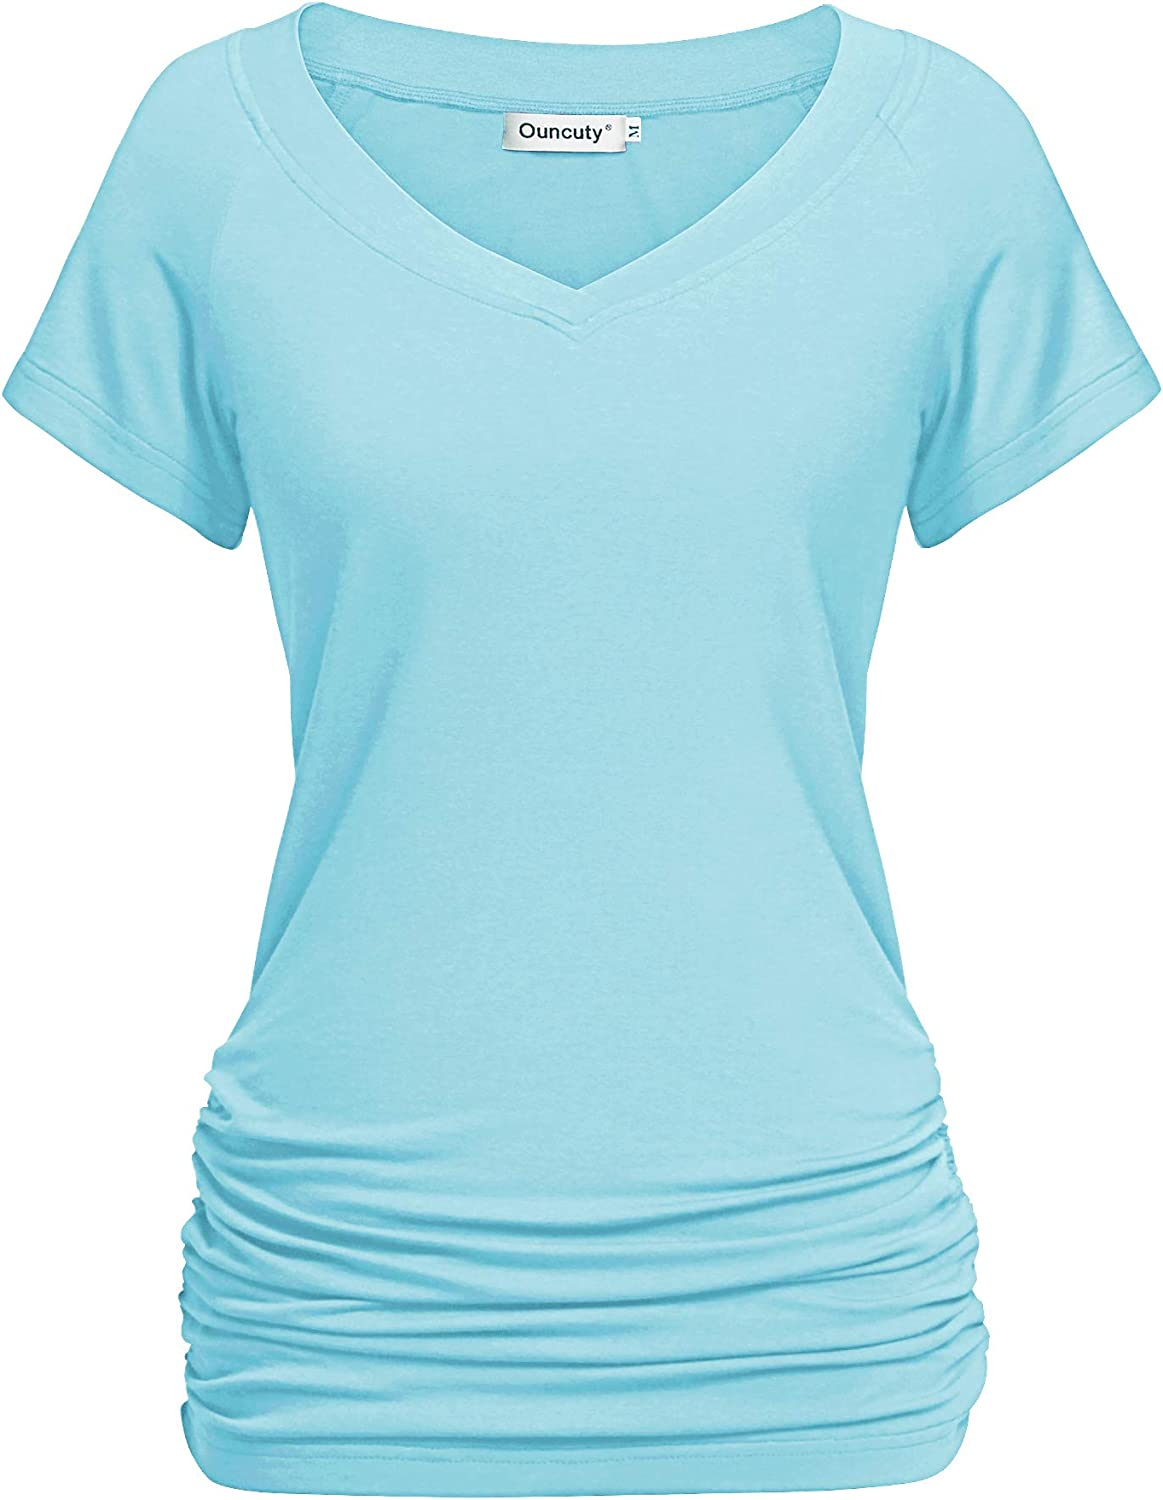 Ouncuty Womens Summer V Neck Short Sleeve Ruched Side Tunic Shirts Loose Fit Top